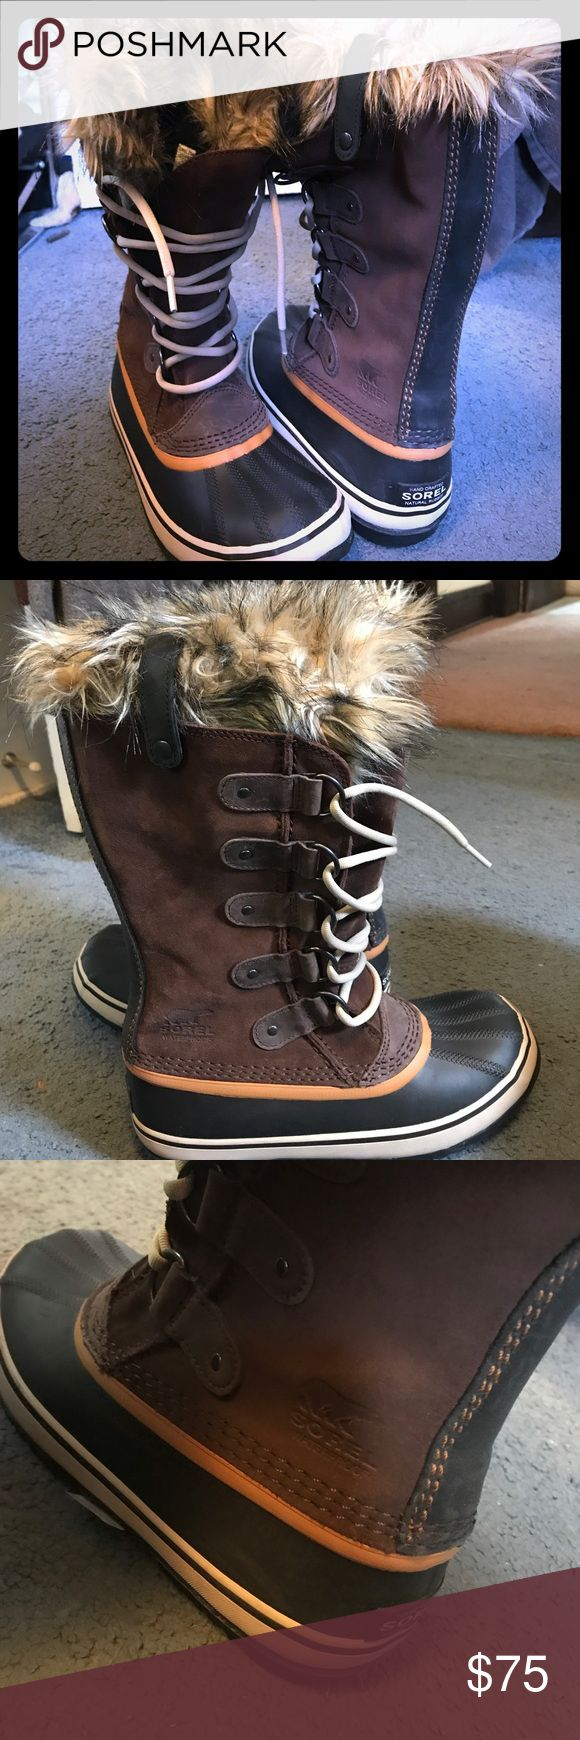 Sorel winter boots Practically new sorel Joan of arctic waterproof winter boots. One button is broken on the top of the boot. I posted a picture Sorel Shoes Winter & Rain Boots